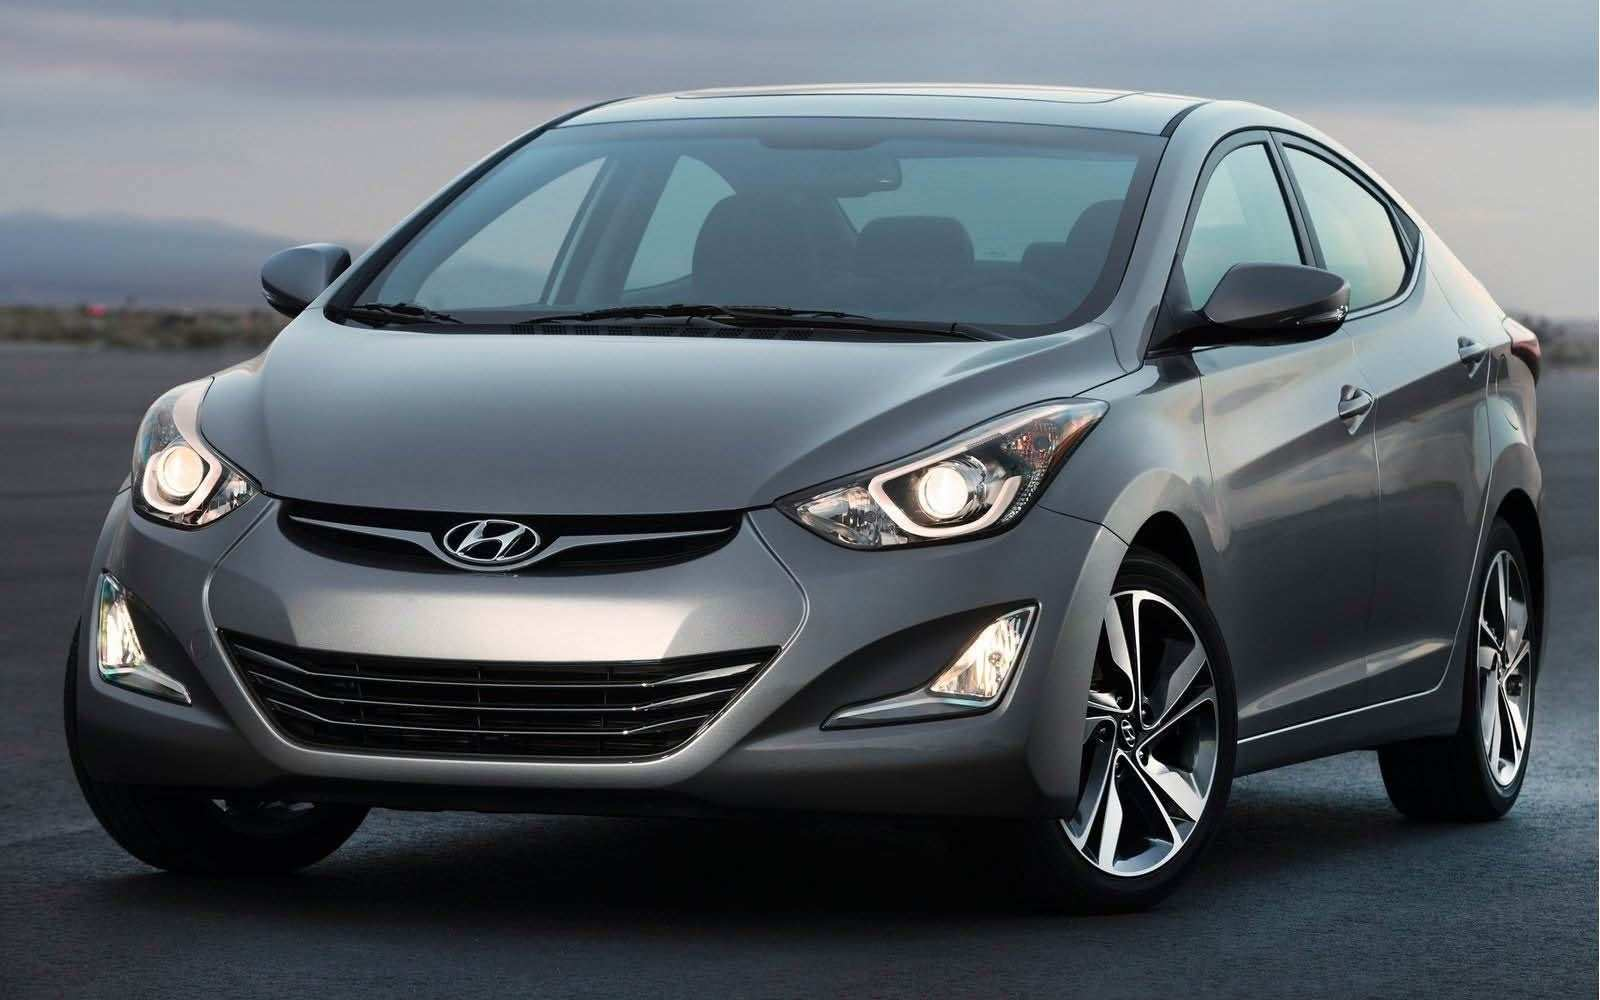 90 Concept of 2020 Hyundai Elantra Sedan Images by 2020 Hyundai Elantra Sedan